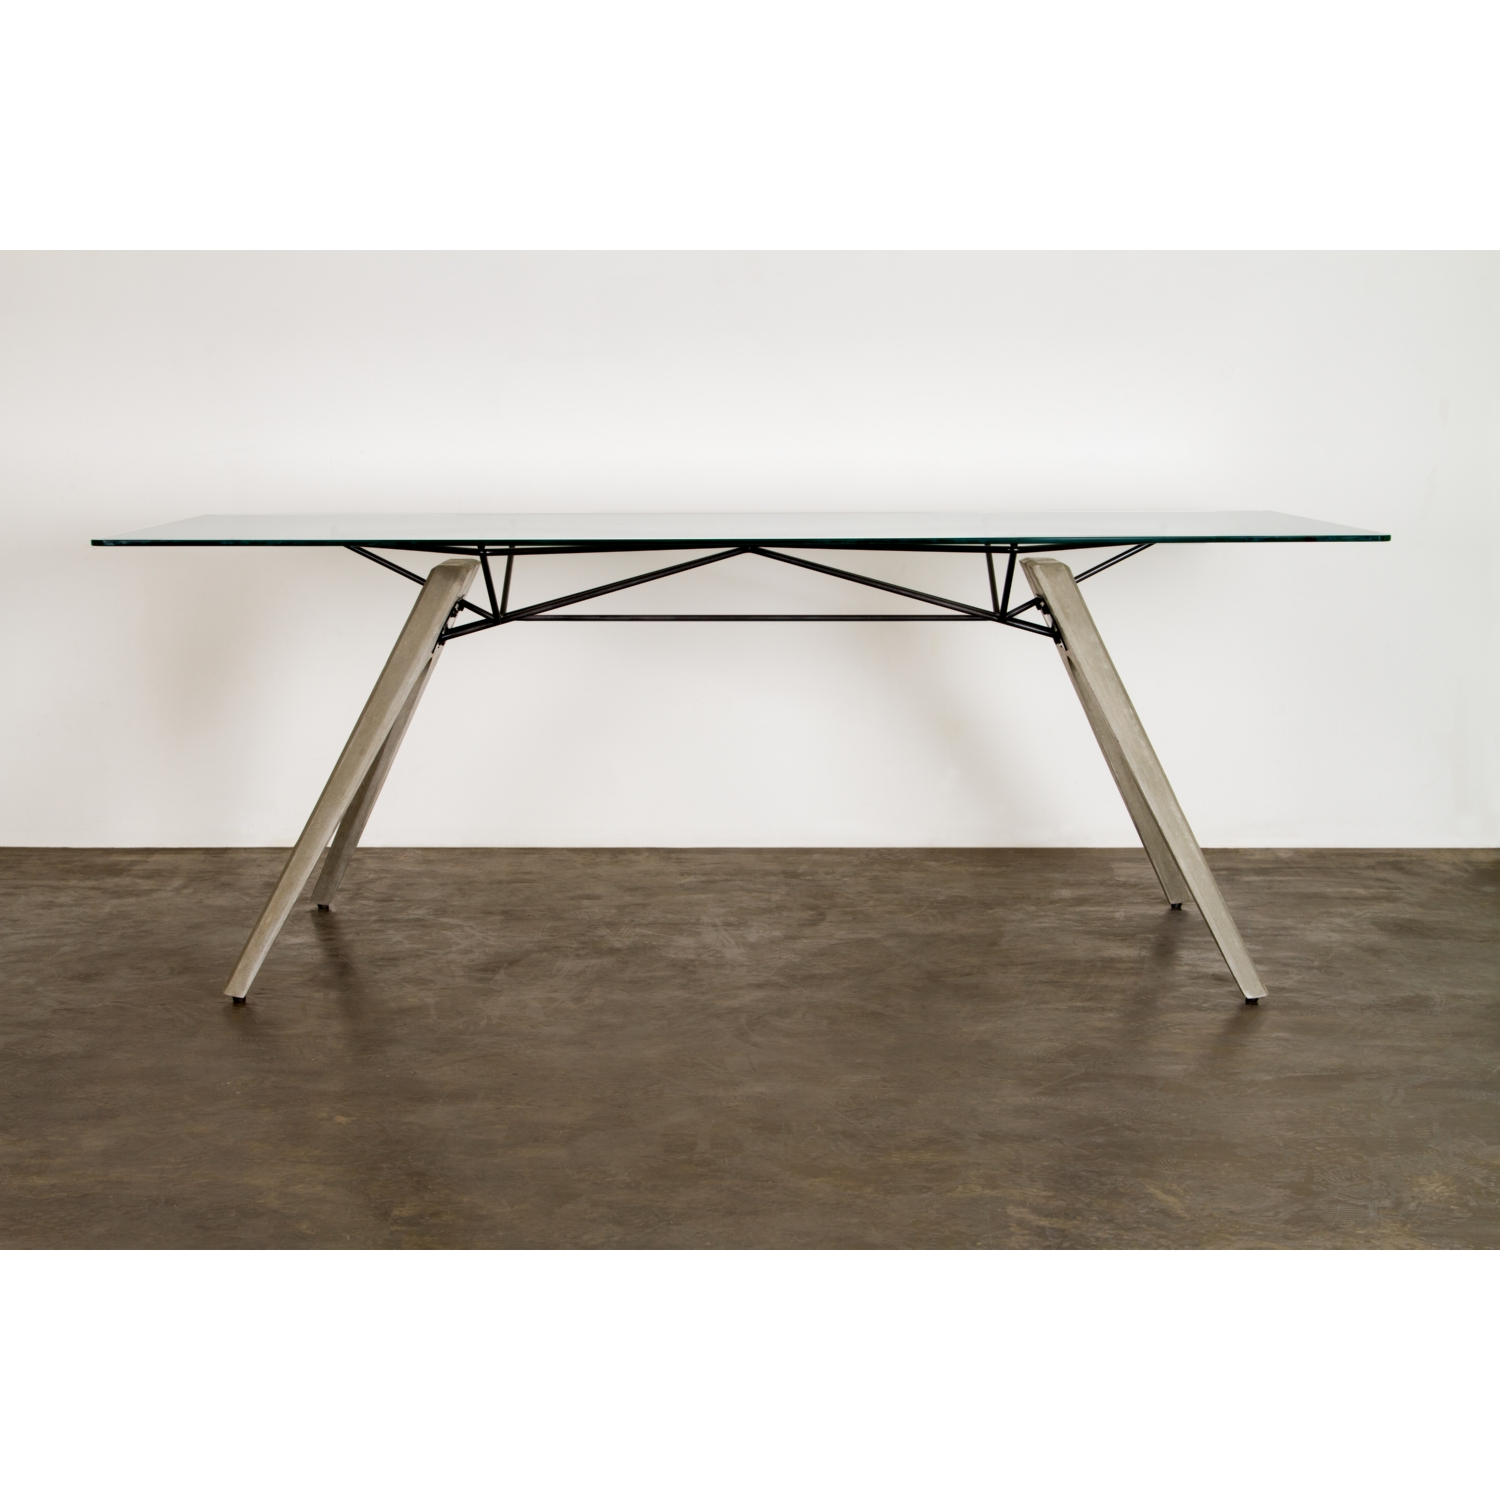 Concrete Top Dining Tables Nuevo Modern Furniture Hgda491 Kahn 94 Dining Table In Concrete